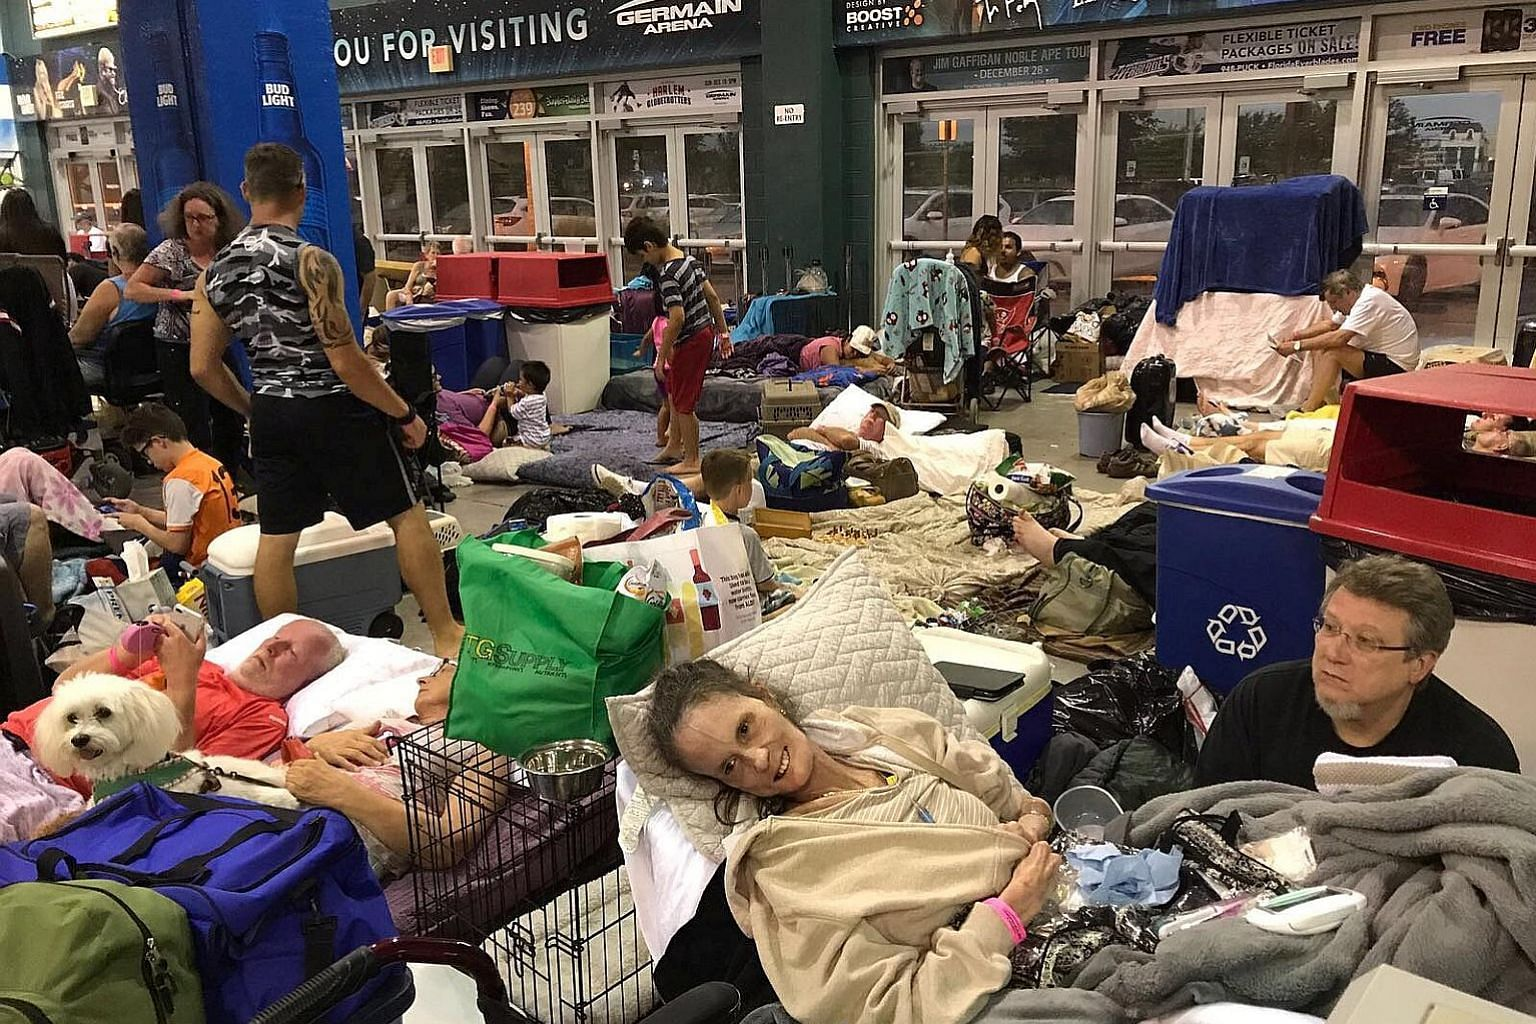 Hurricane Irma's arrival on the Florida coast over the weekend drove more than seven million people from the state seeking shelter. Markets will be monitoring the impact of the storm, which left a trail of death and destruction across the Caribbean.